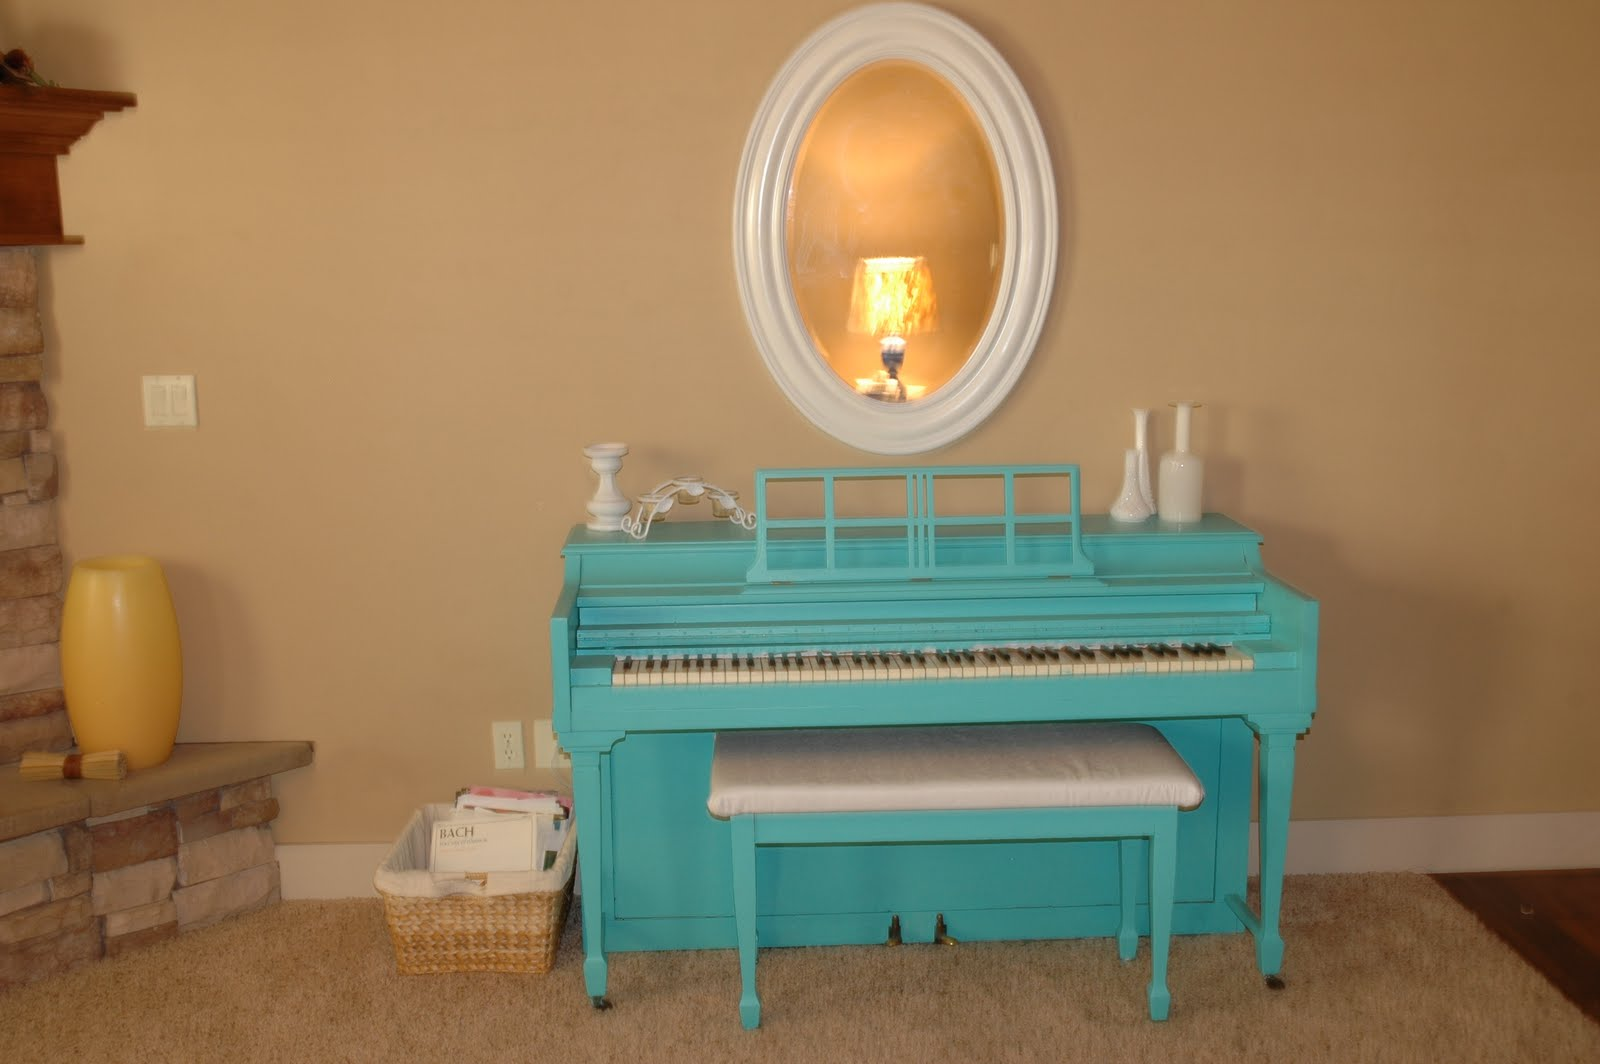 The Turquoise Piano Feature Friday Living Room